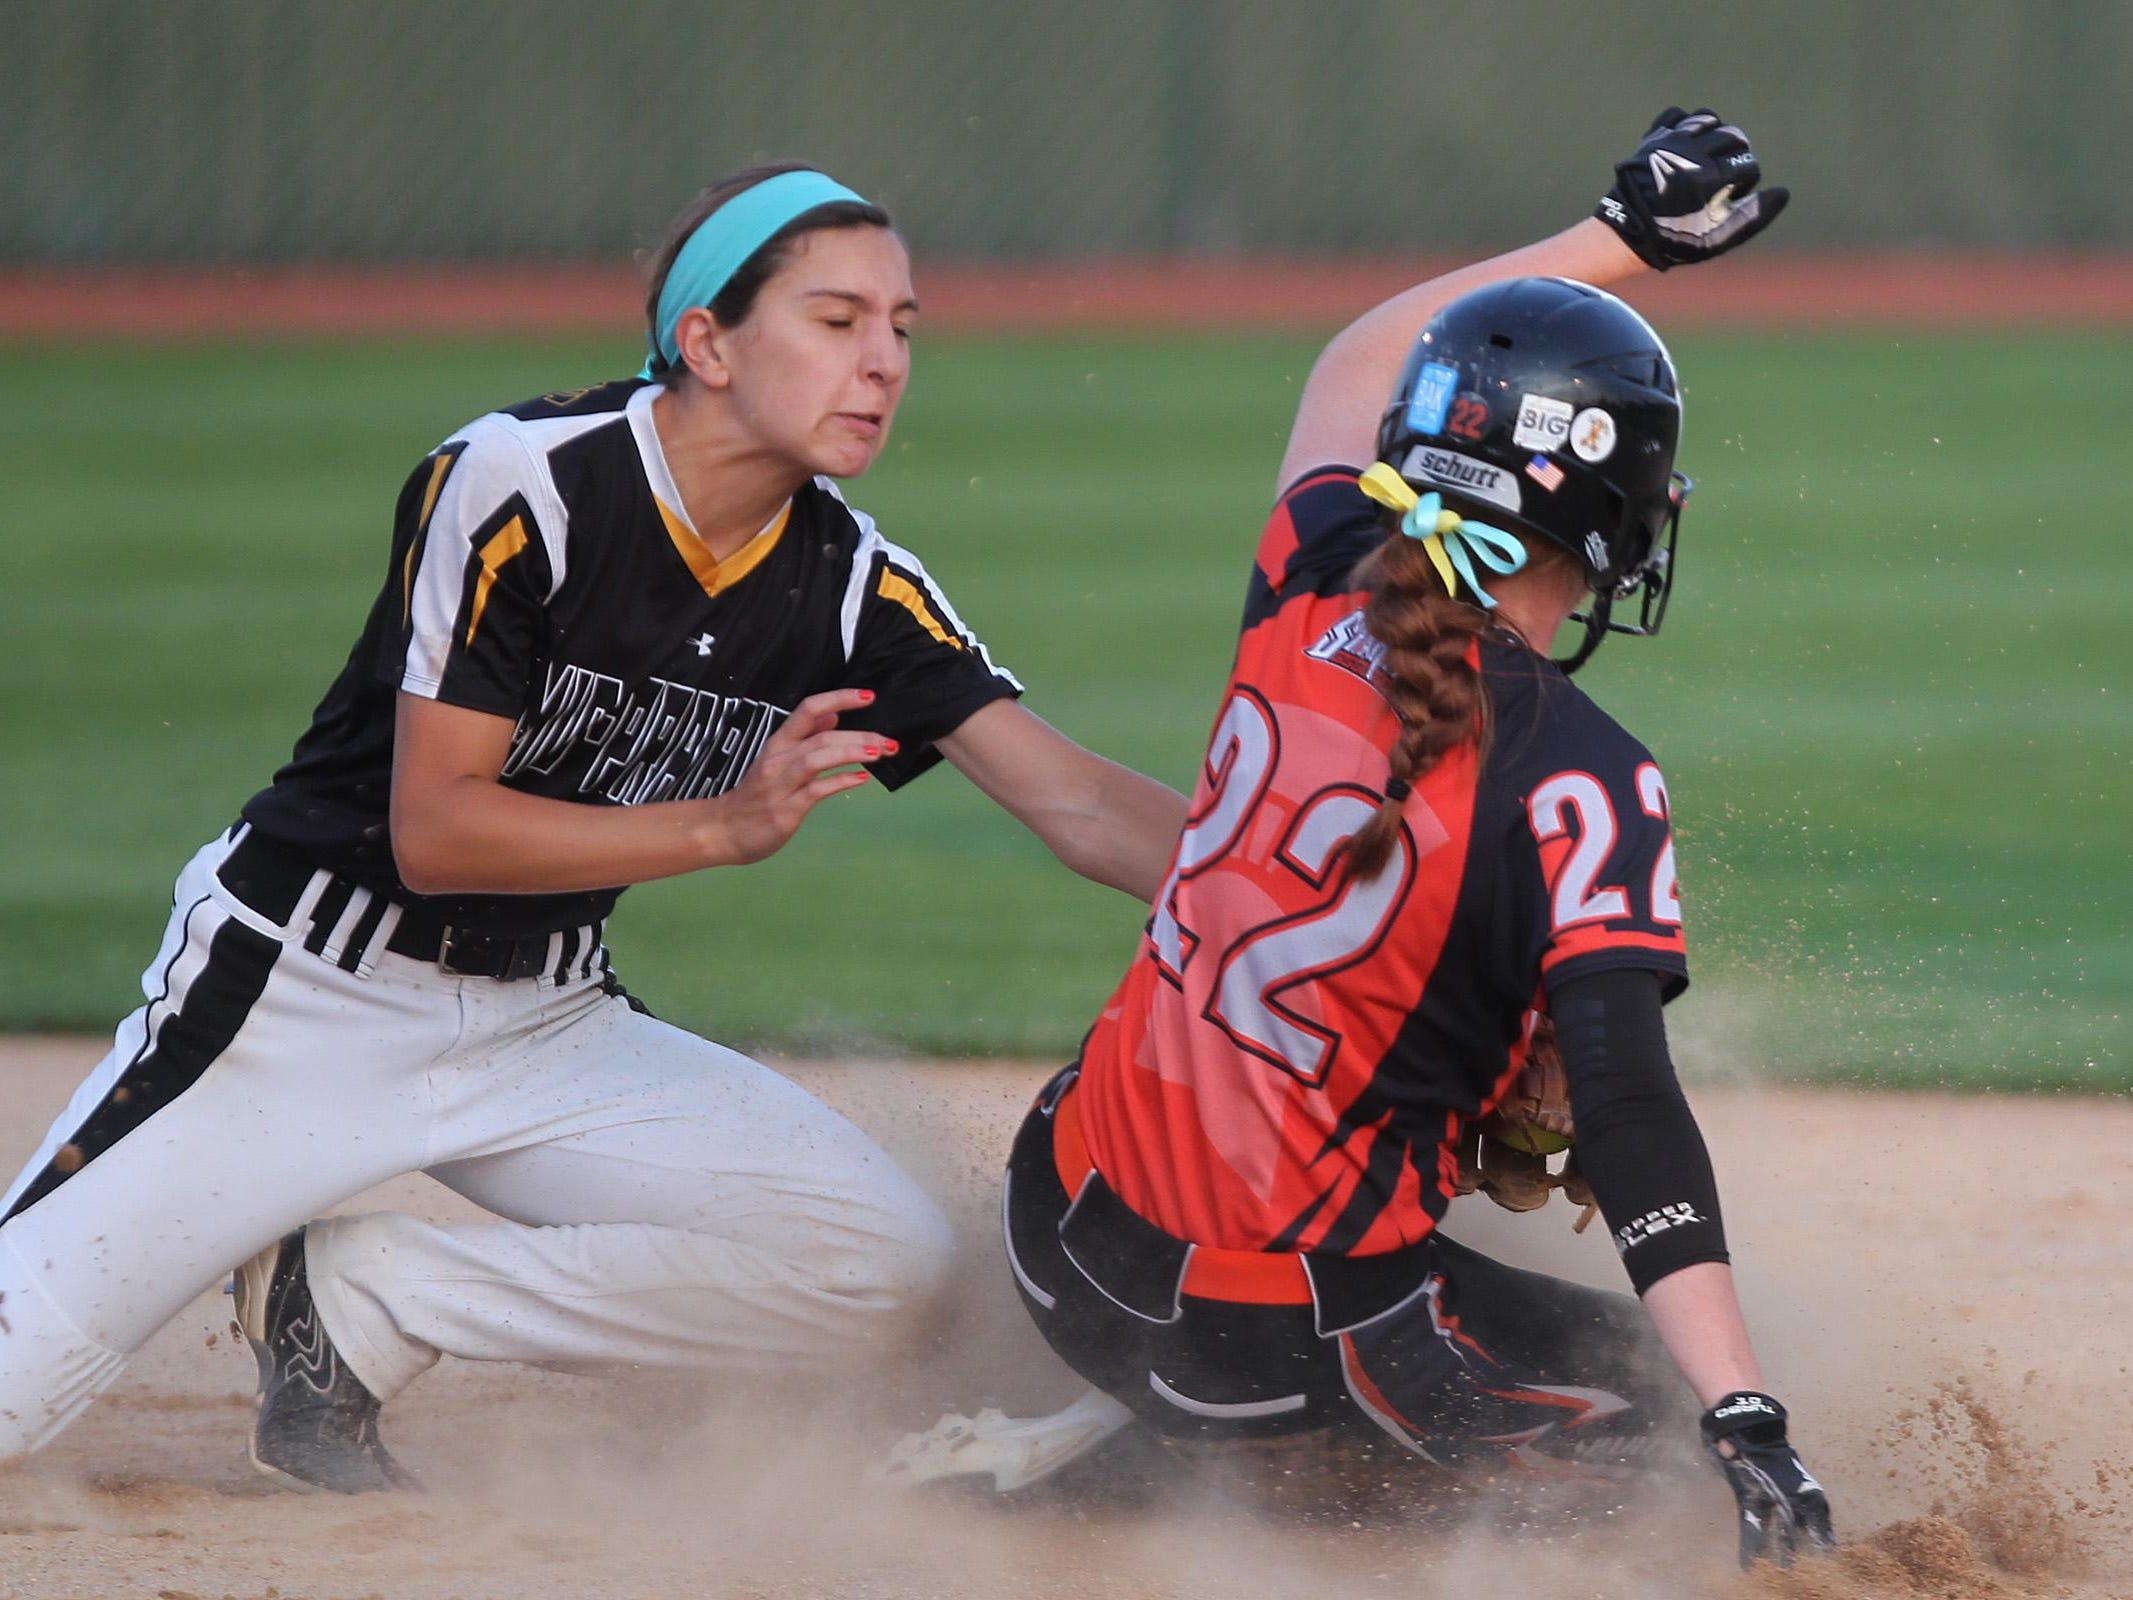 Solon's Jess Heick safely slides past Mid-Prairie's Alex Rath at second base during their regional game at Solon on Friday.